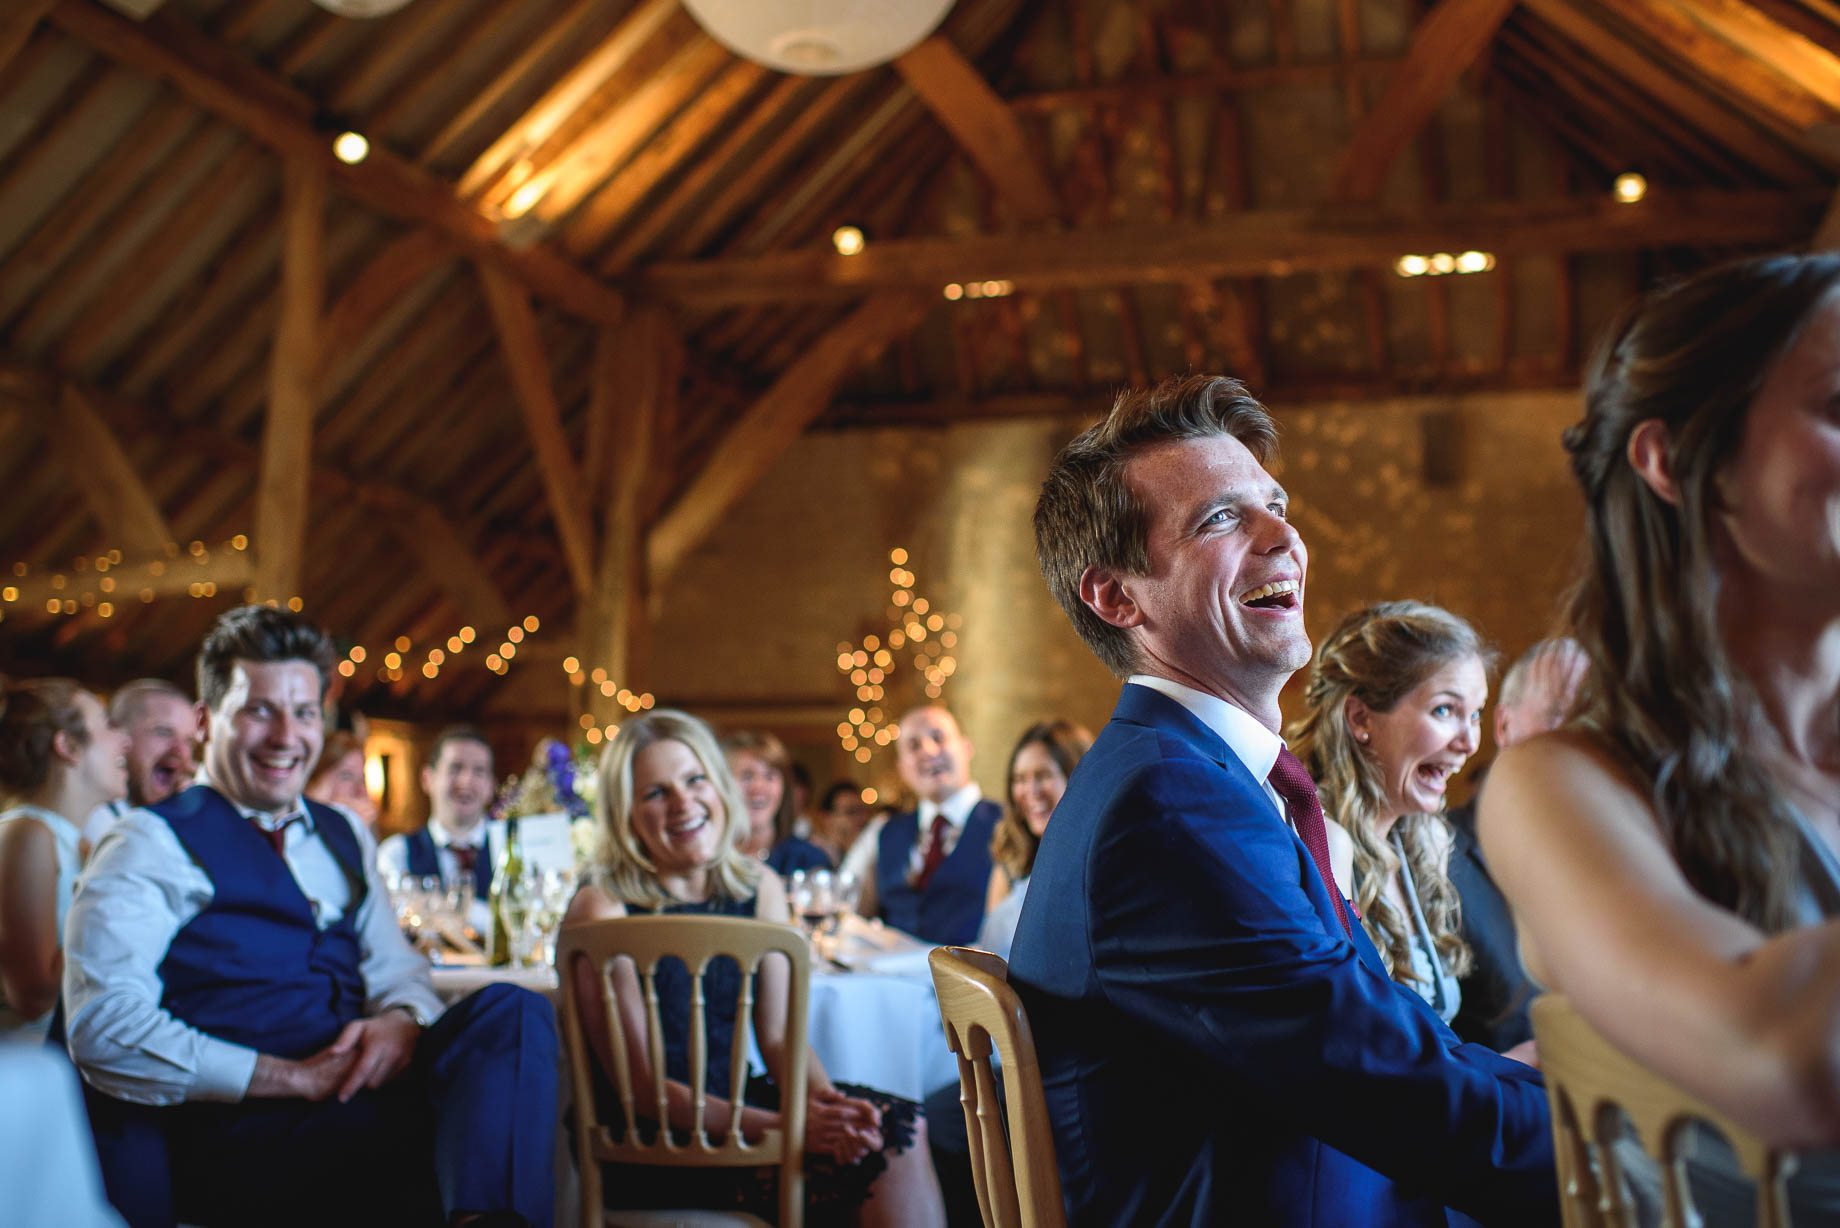 Bury Court Barn wedding photography by Guy Collier - Heather and Pat (143 of 170)